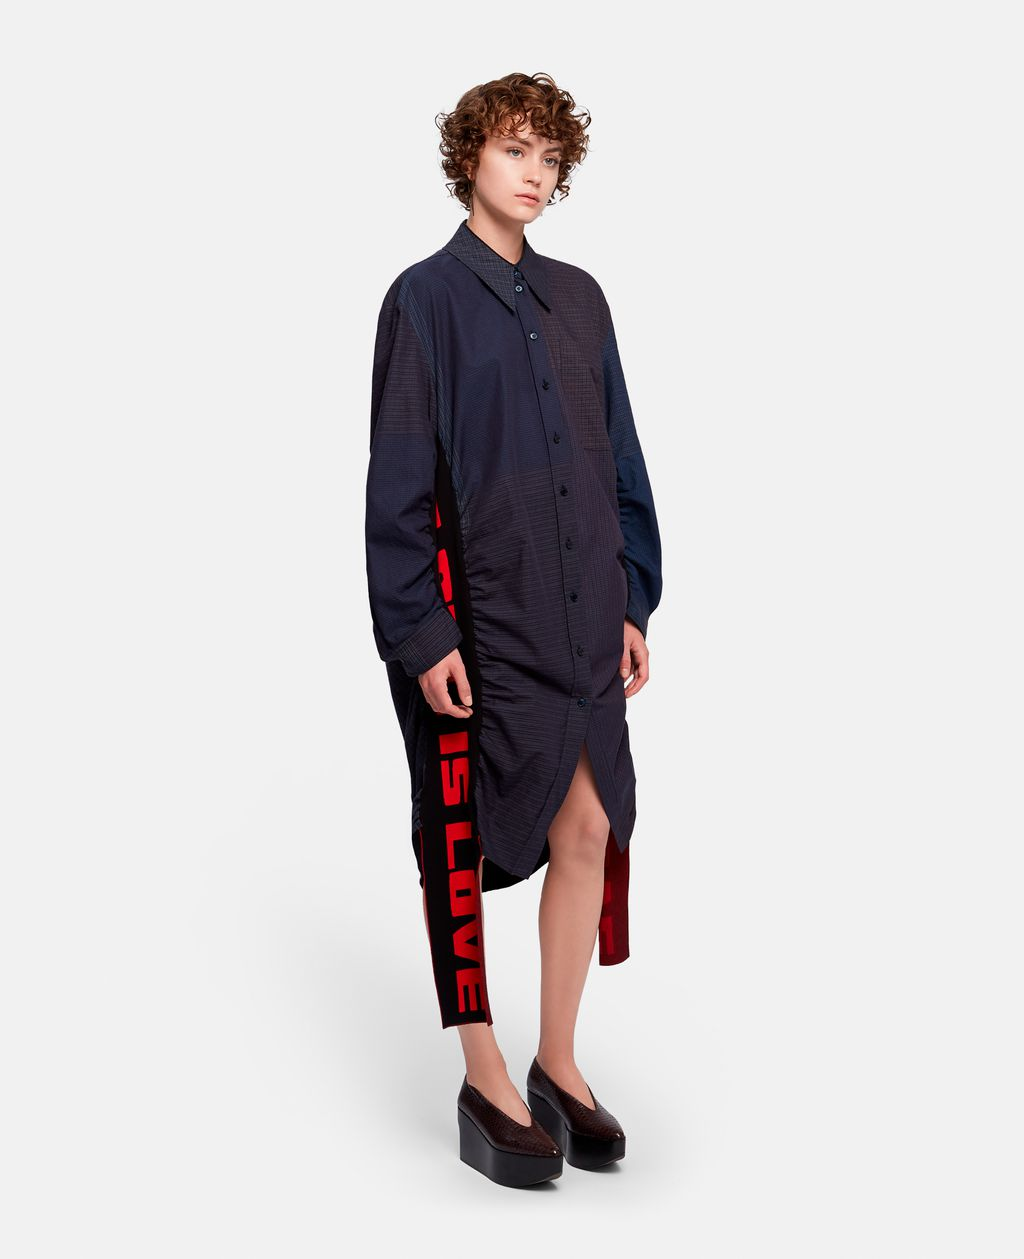 """Leave it up to Stella McCartney to design a casual Valentine's Day shirt dress. Proclaiming """"ALL IS LOVE"""" this wearable art would make any chic lady squeal with excitement. Raven All Is Love Dress, $1,495 @stellamccartney.com"""